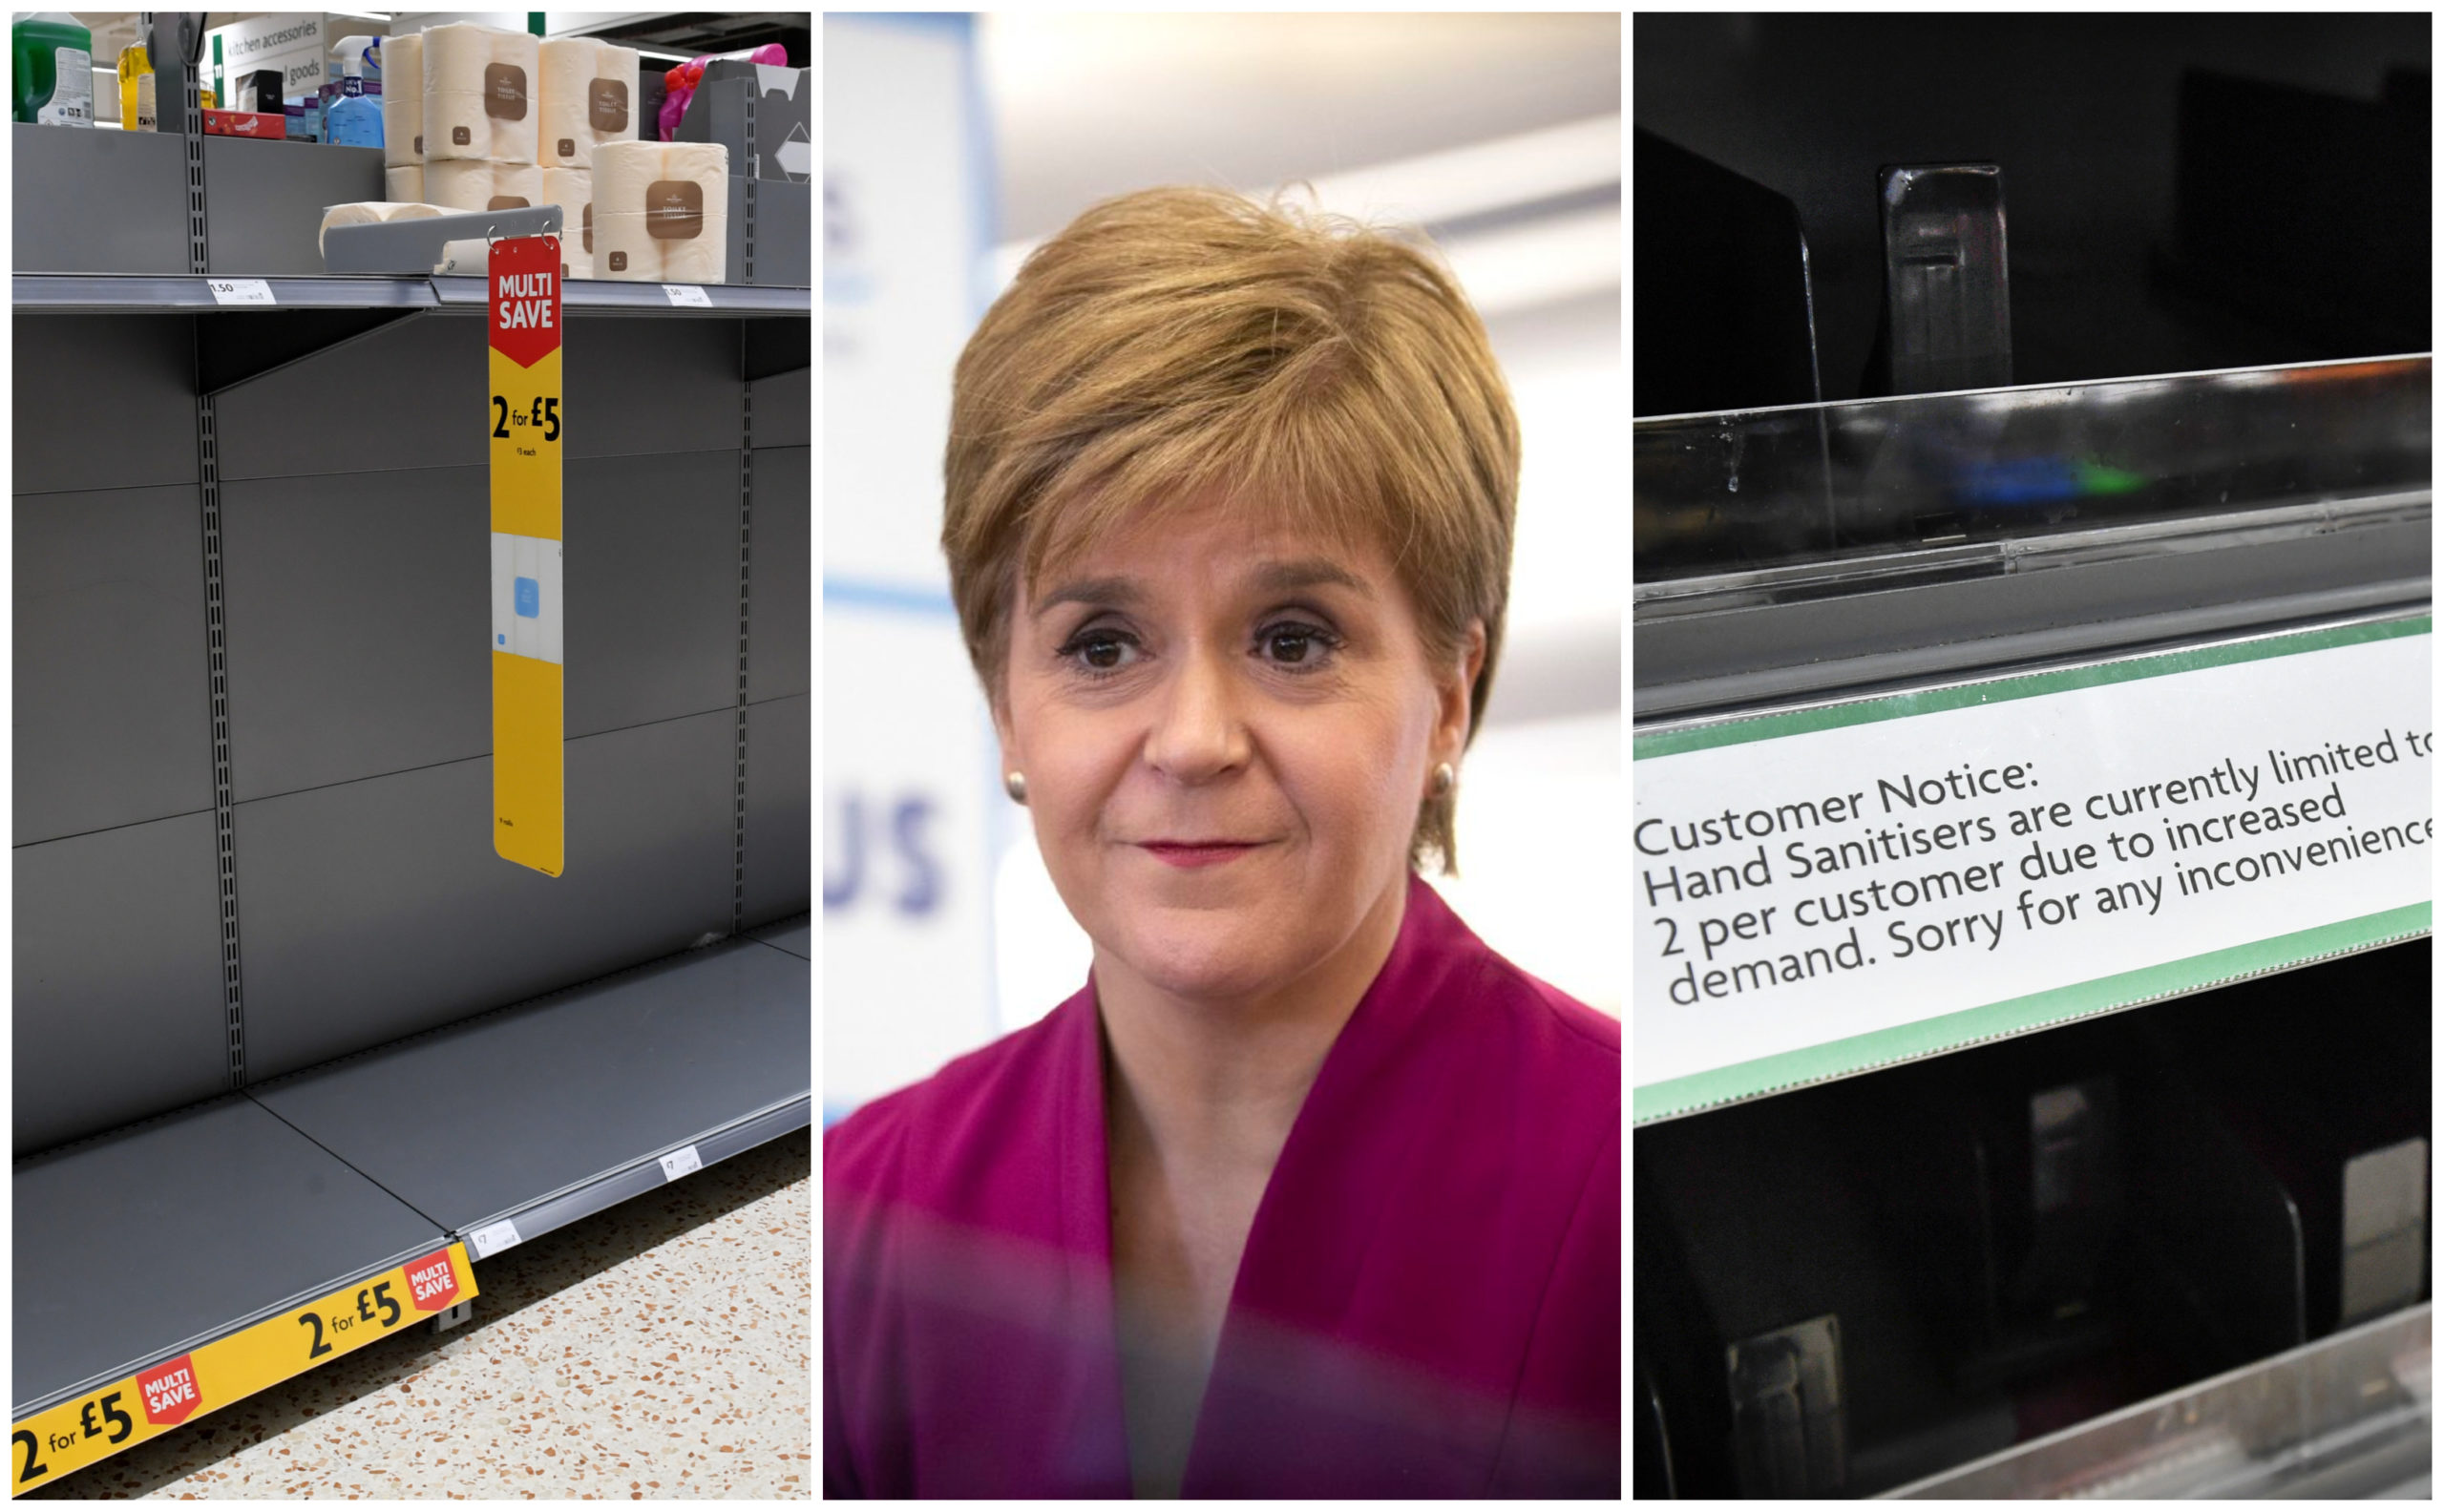 Nicola Sturgeon has urged people not to panic-buy durtng the coronavirus outbreak.